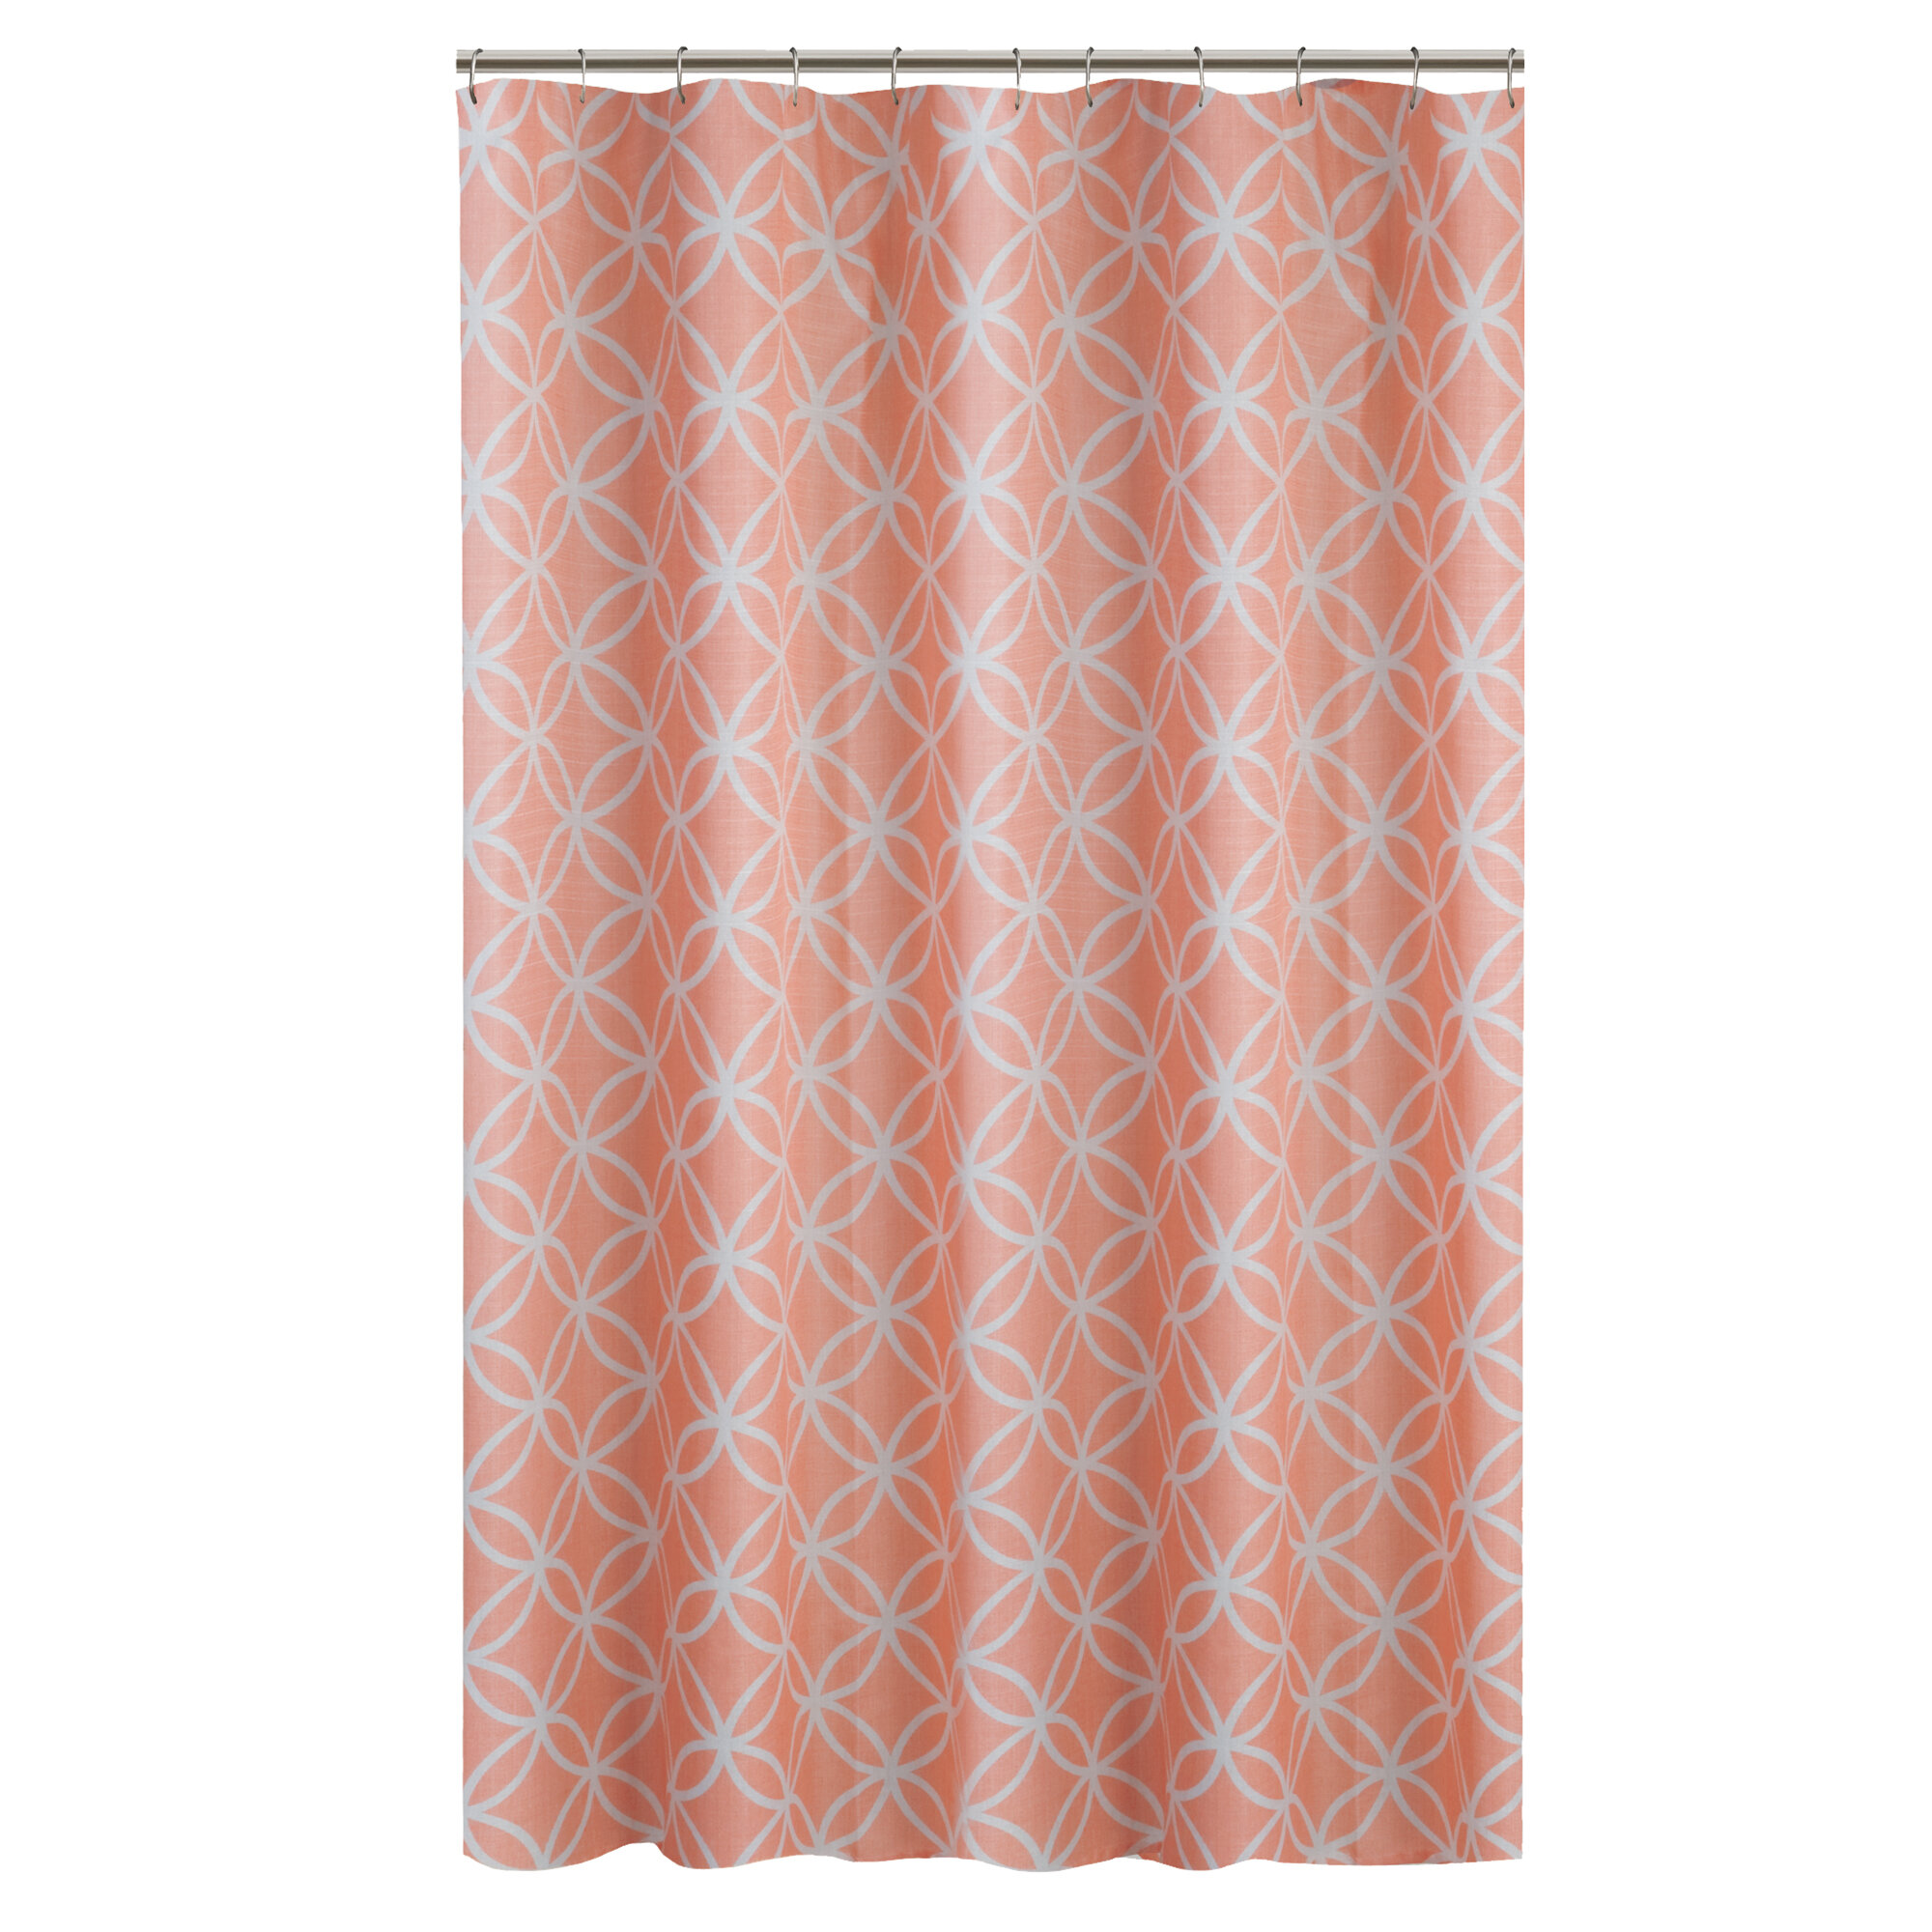 Maytex Emma Shower Curtain